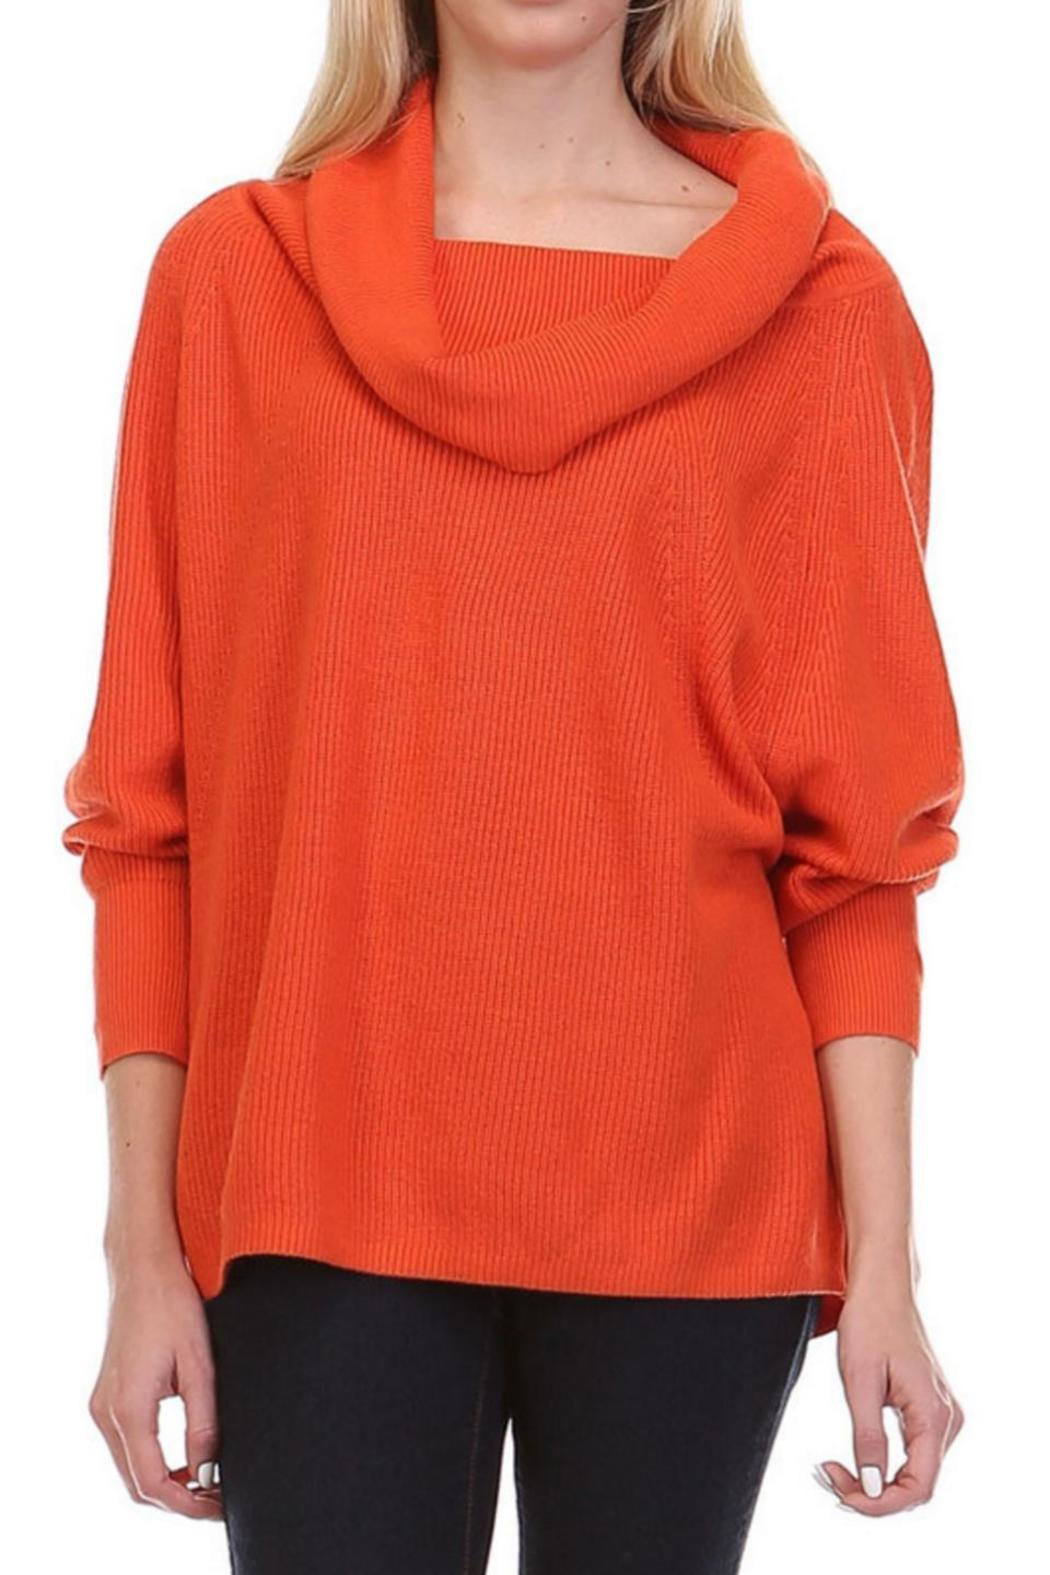 Fate Inc Cowl Neck Sweater From Los Angeles By Karen Michelle